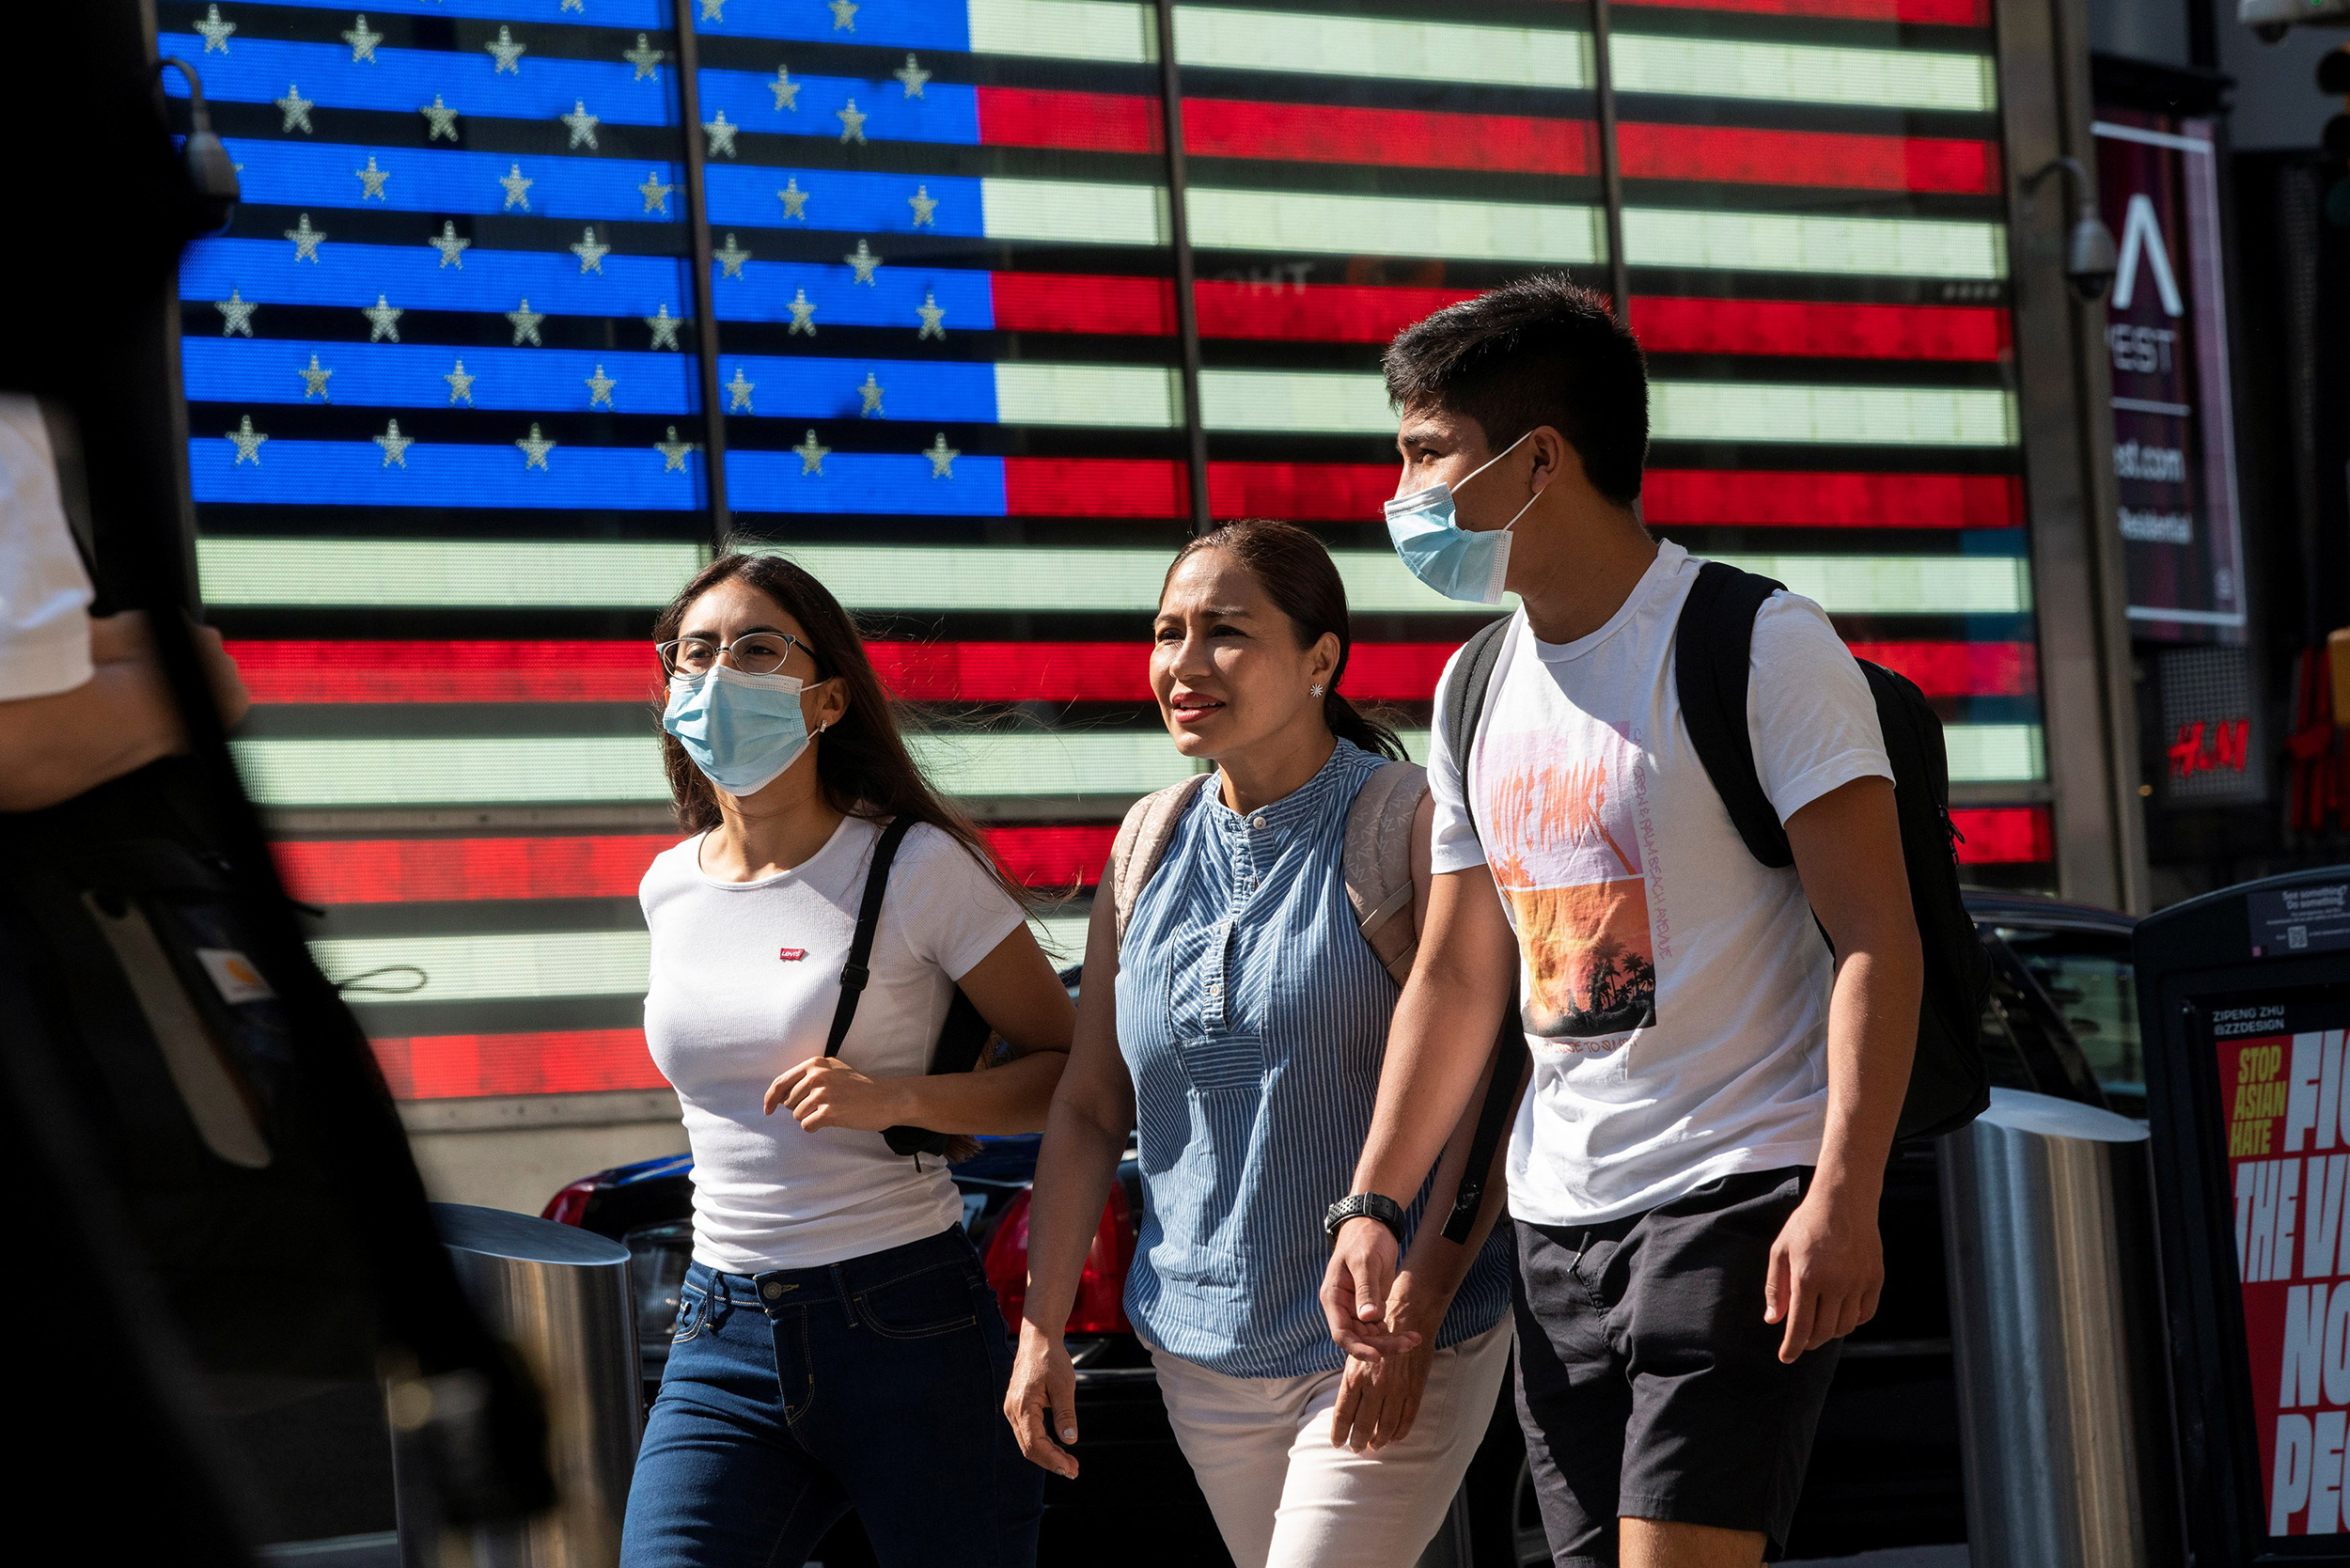 New CDC mask advice met with mixed reactions